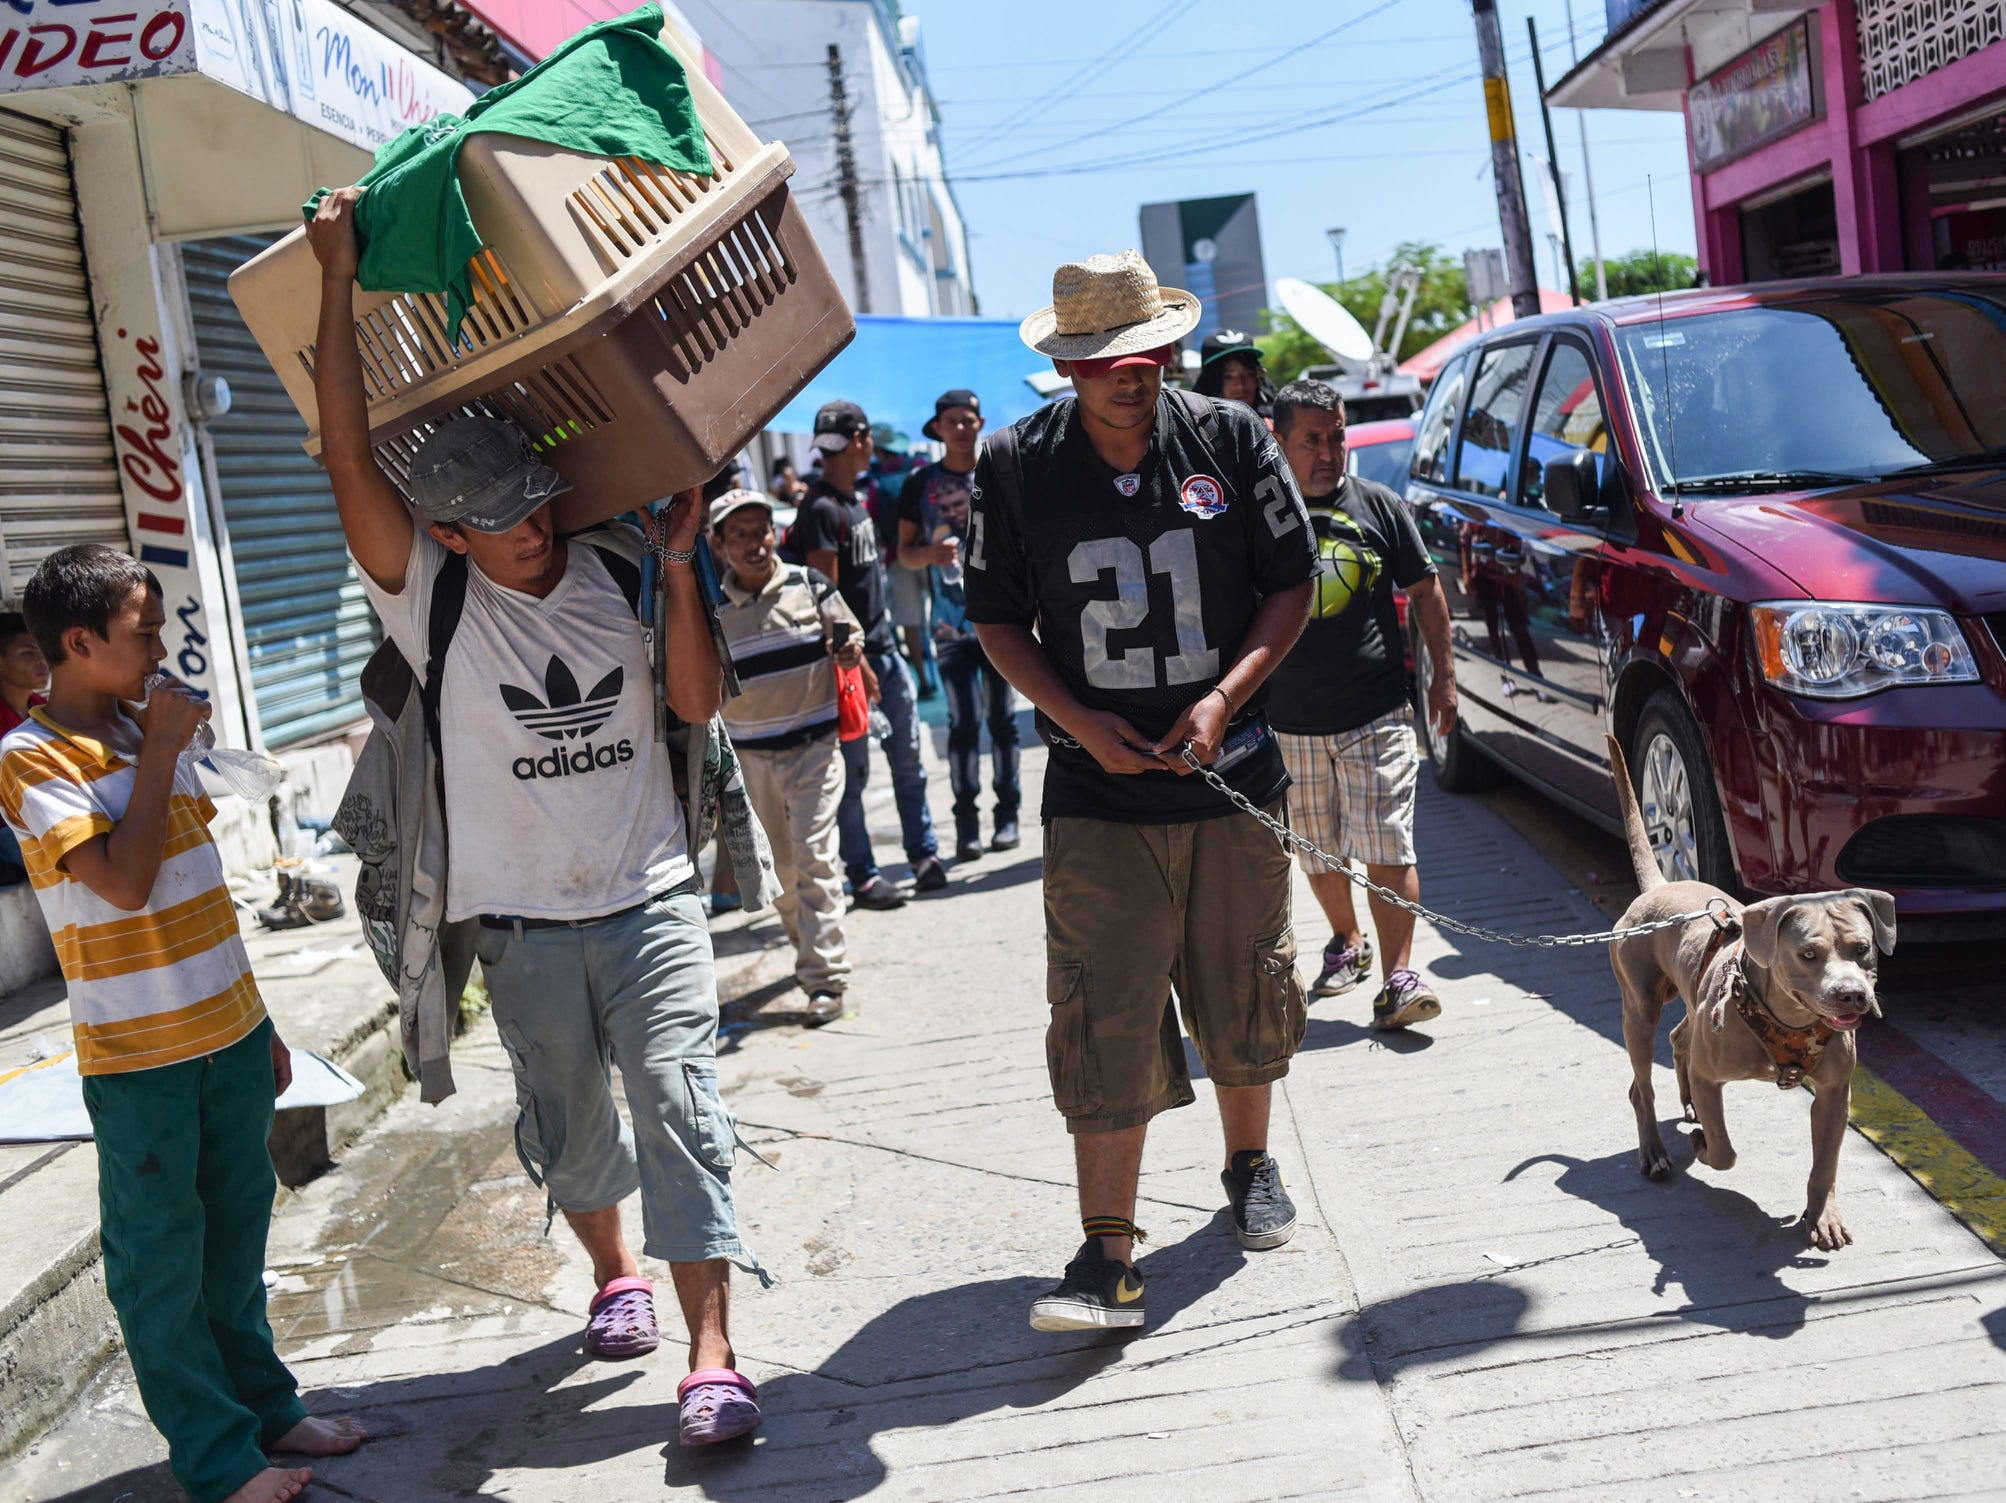 Honduran migrant, Luis Lopez, taking part in a caravan heading to the U.S., walks with his dog during a stop in their journey, in Huixtla, Chiapas state, Mexico.